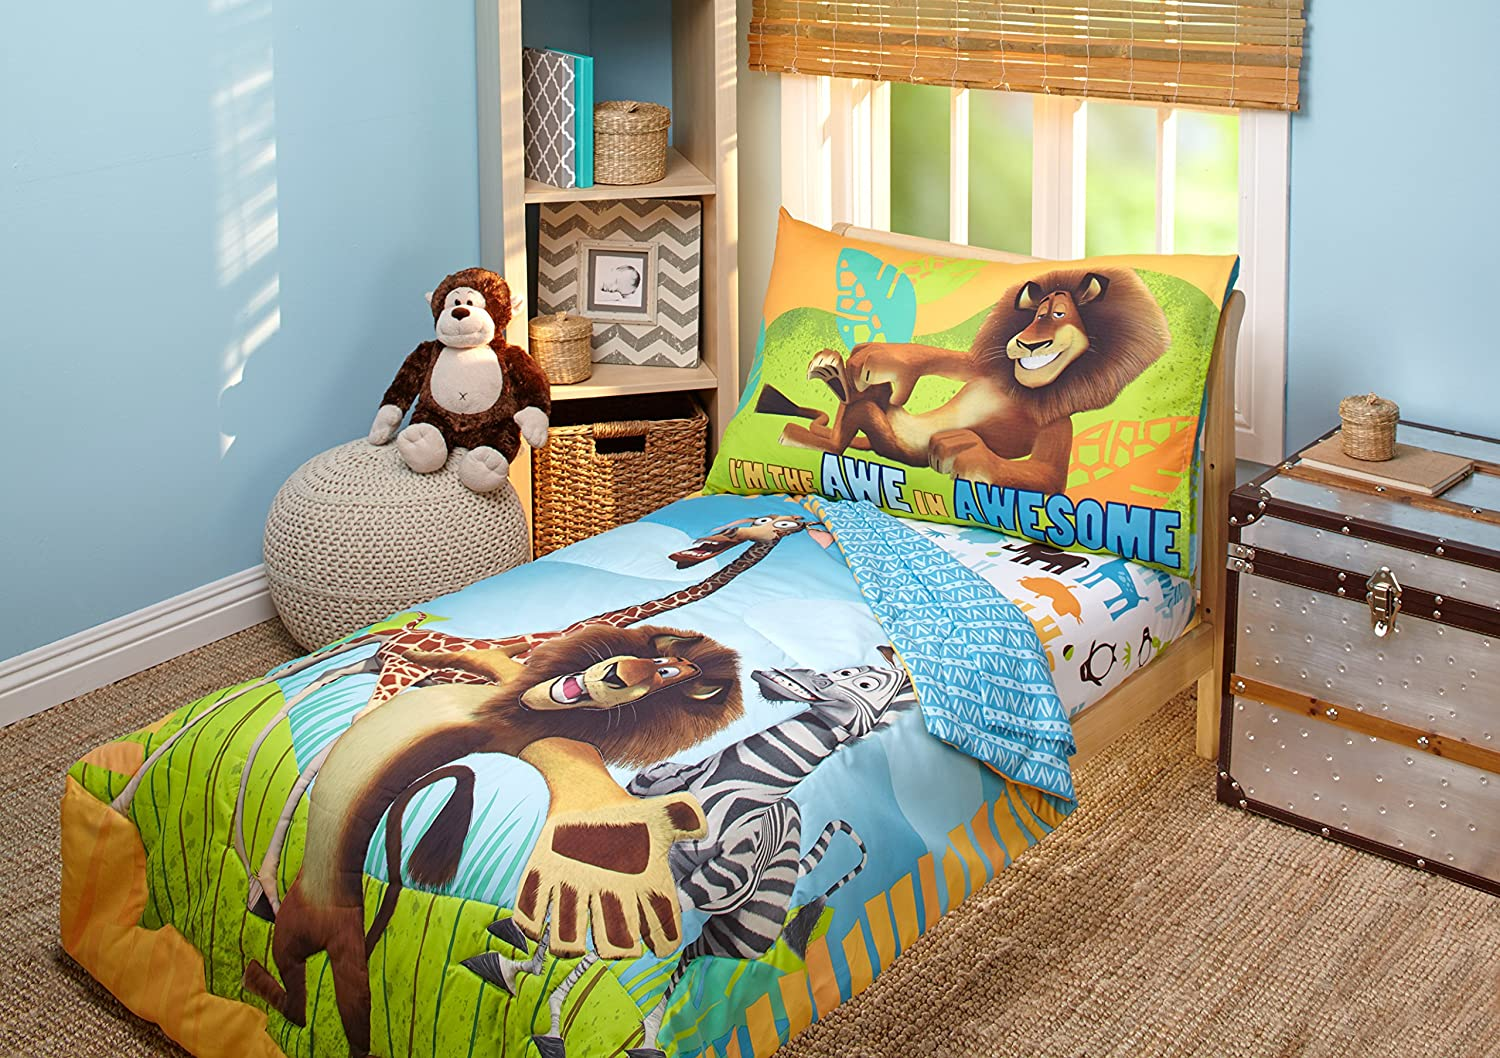 Disney DreamWorks Animation Madagascar Behold My Mane 4 Piece Toddler Bedding Set, Toddler Crown Crafts Infant Products Inc. 7302416